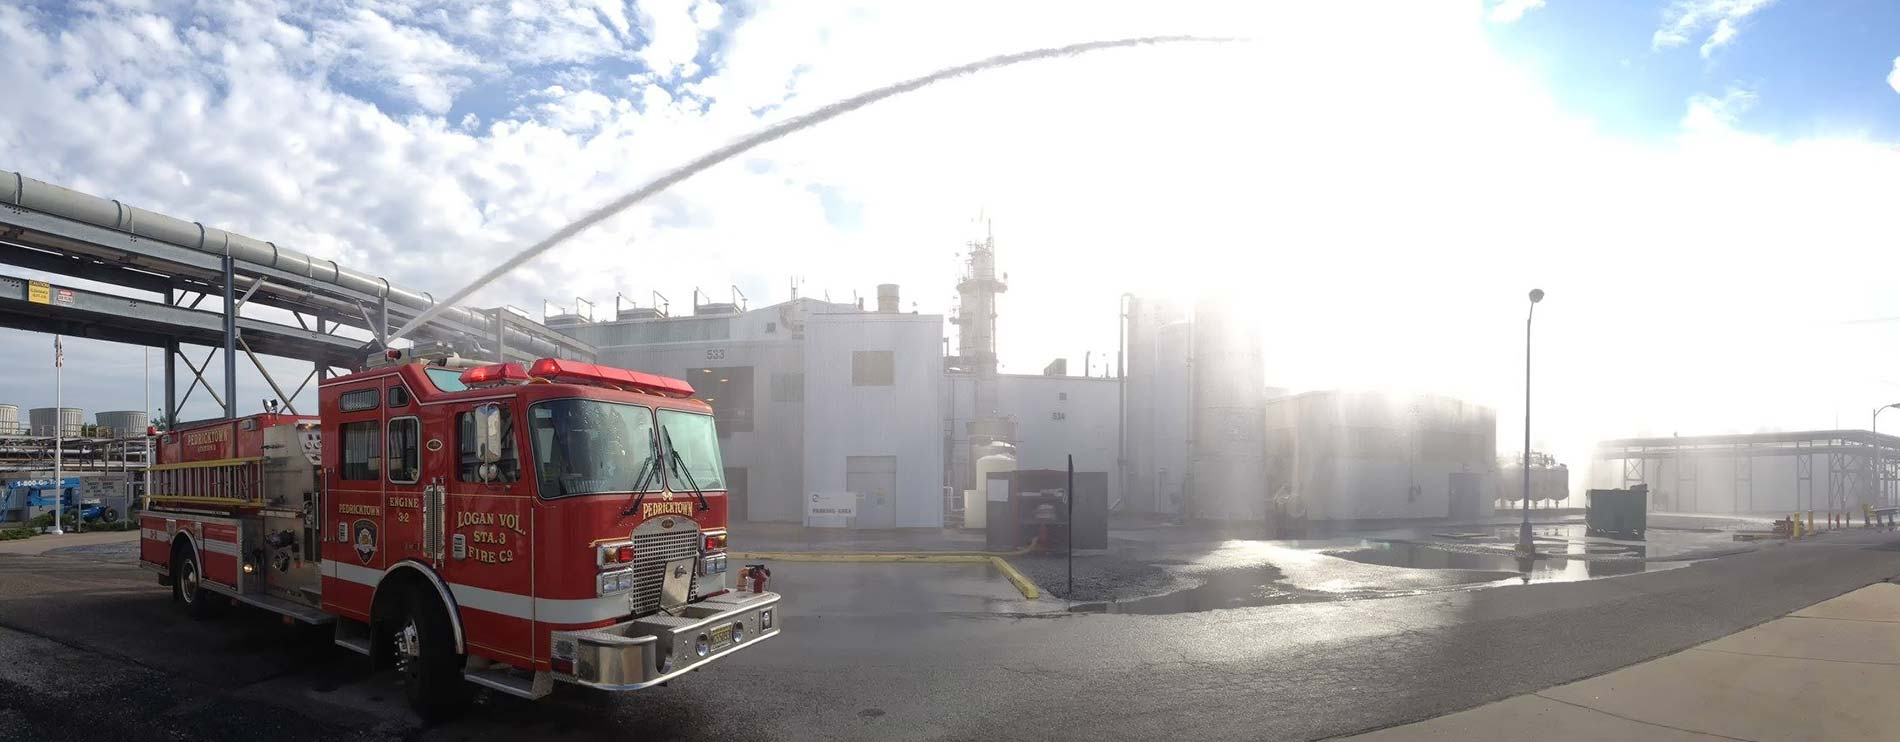 Firetruck hosing down an industrial area with arc of water